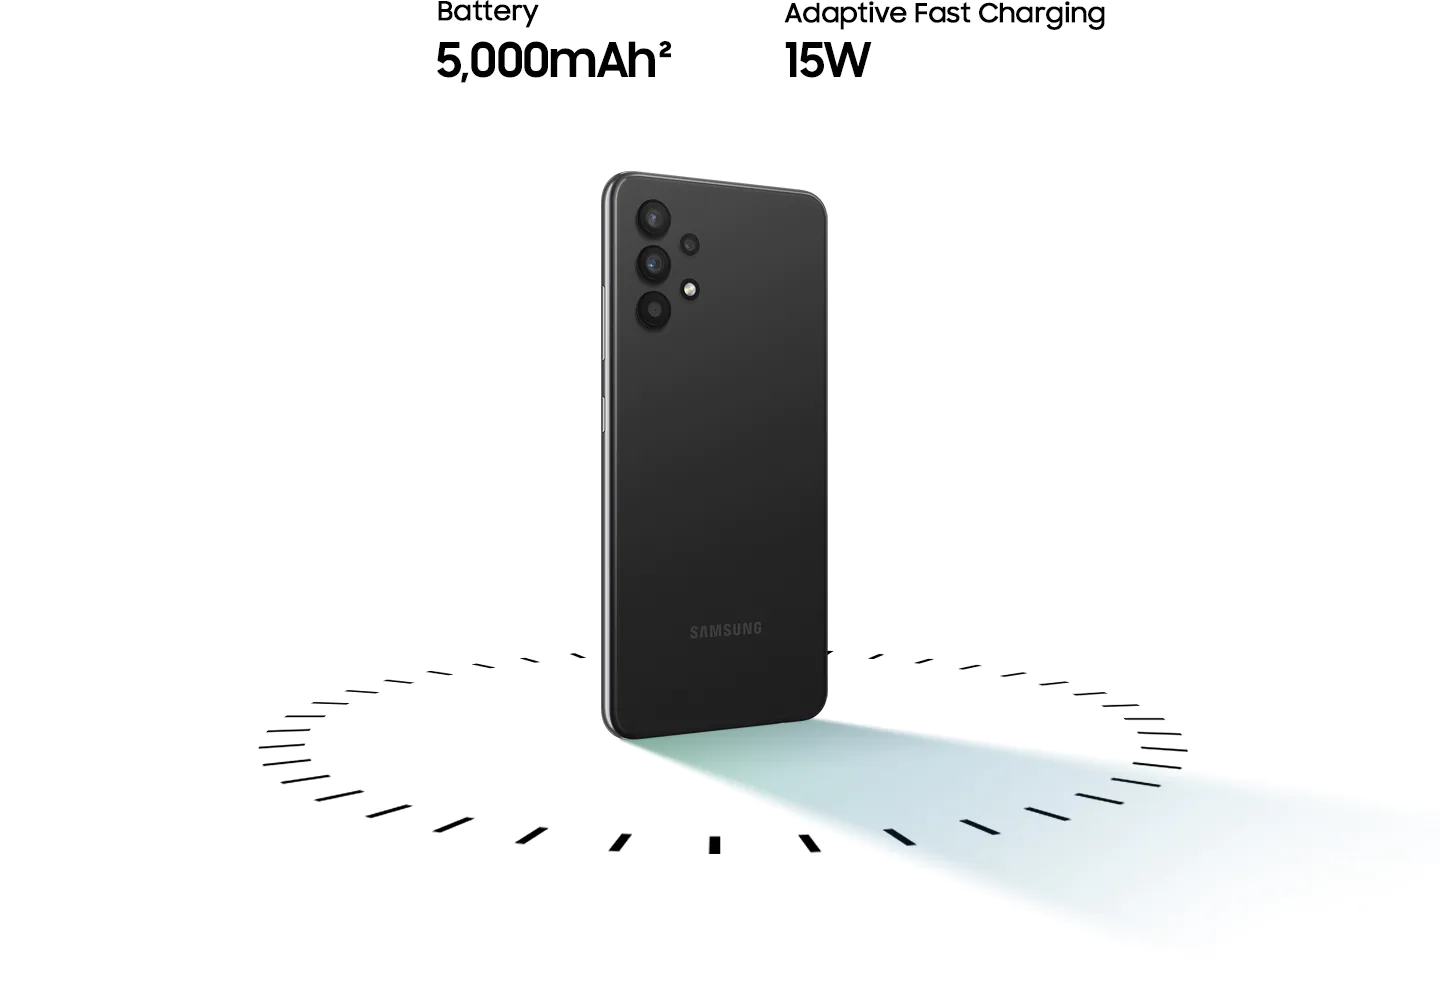 Galaxy A32 stands up, surrounded by circular dots, with the text of 5,000mAh Battery and 15W Adaptive Fast charging.